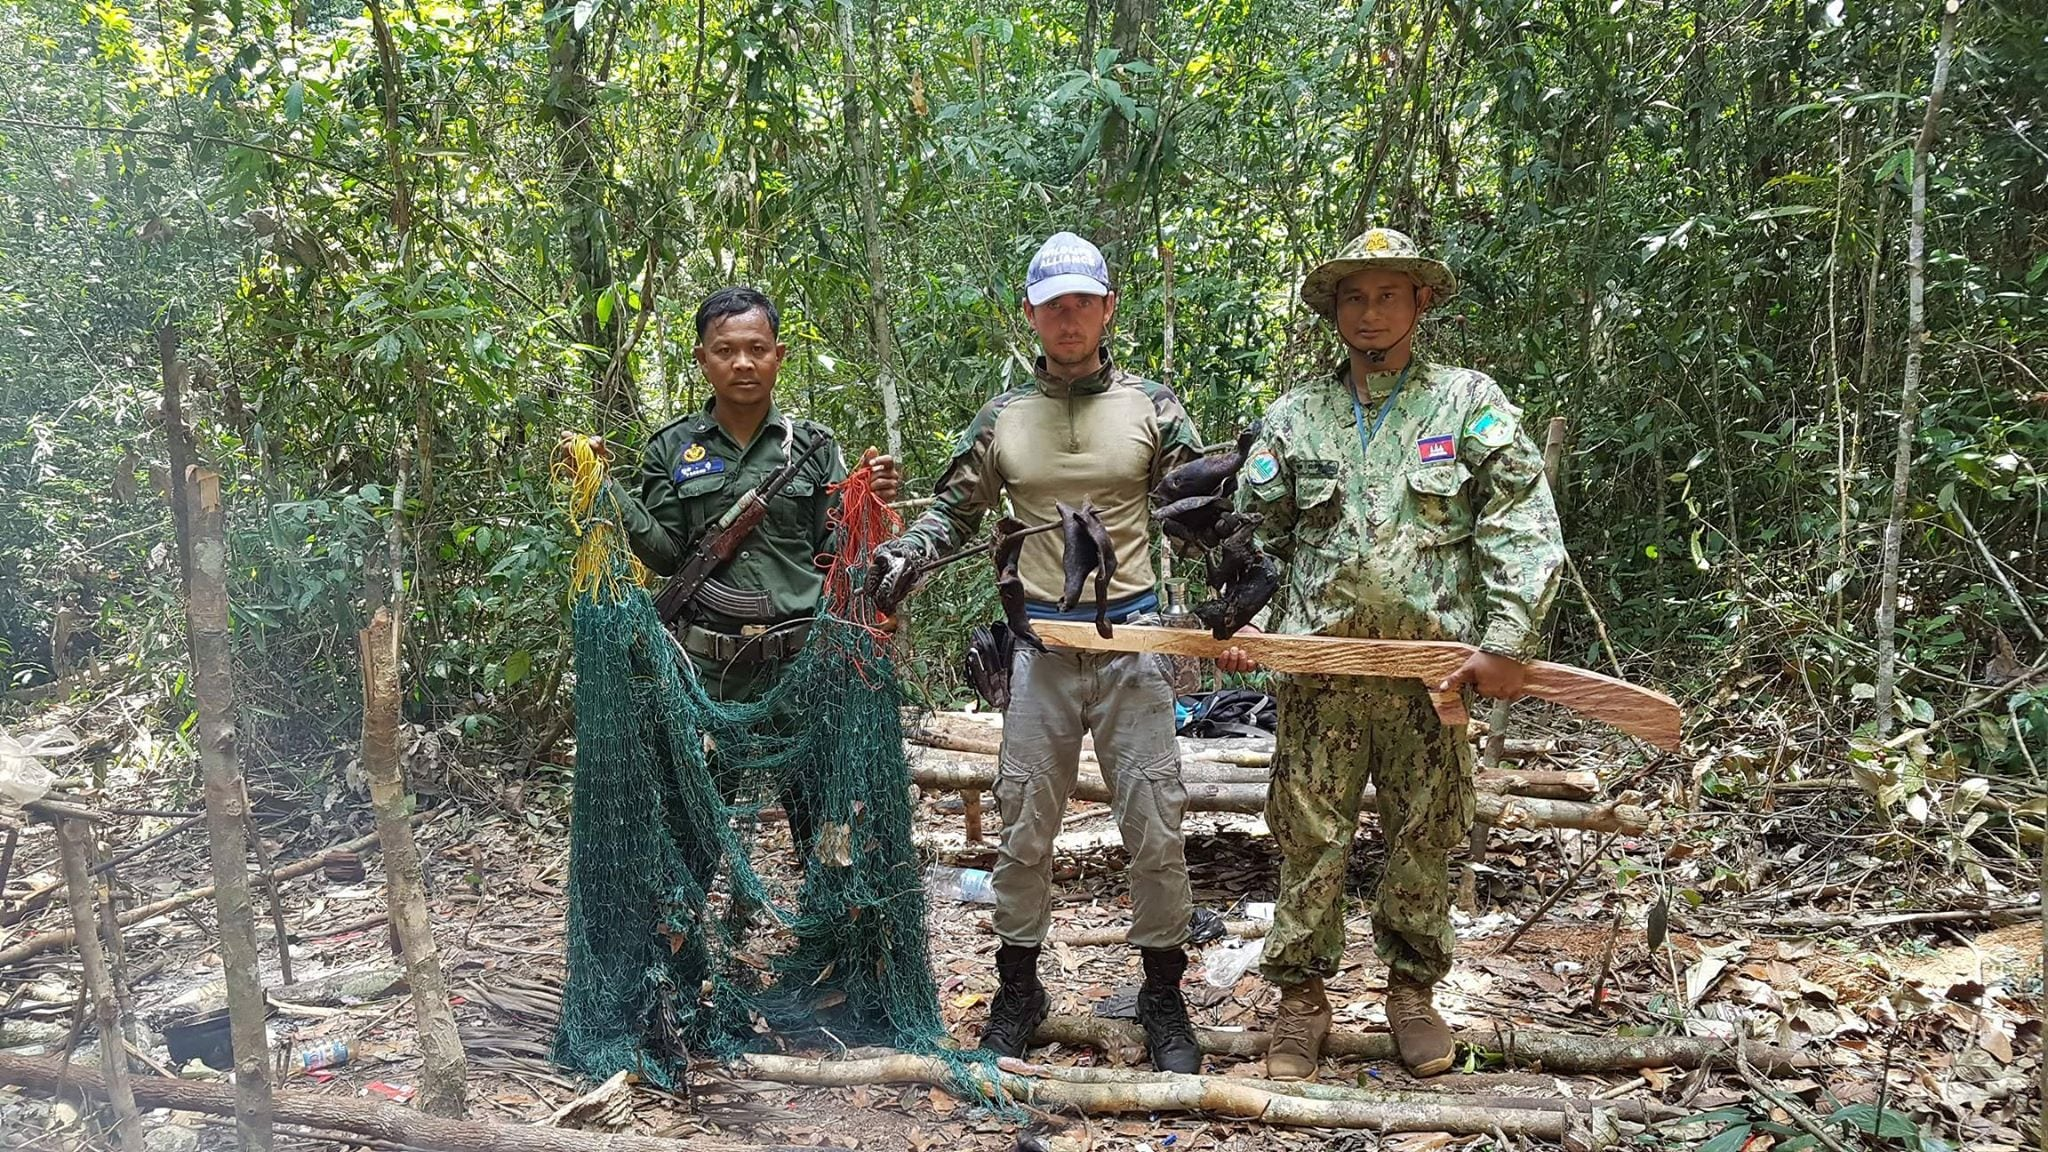 the rangers found four hunting camps The rangers found four hunting camps hunting gun in cambodia